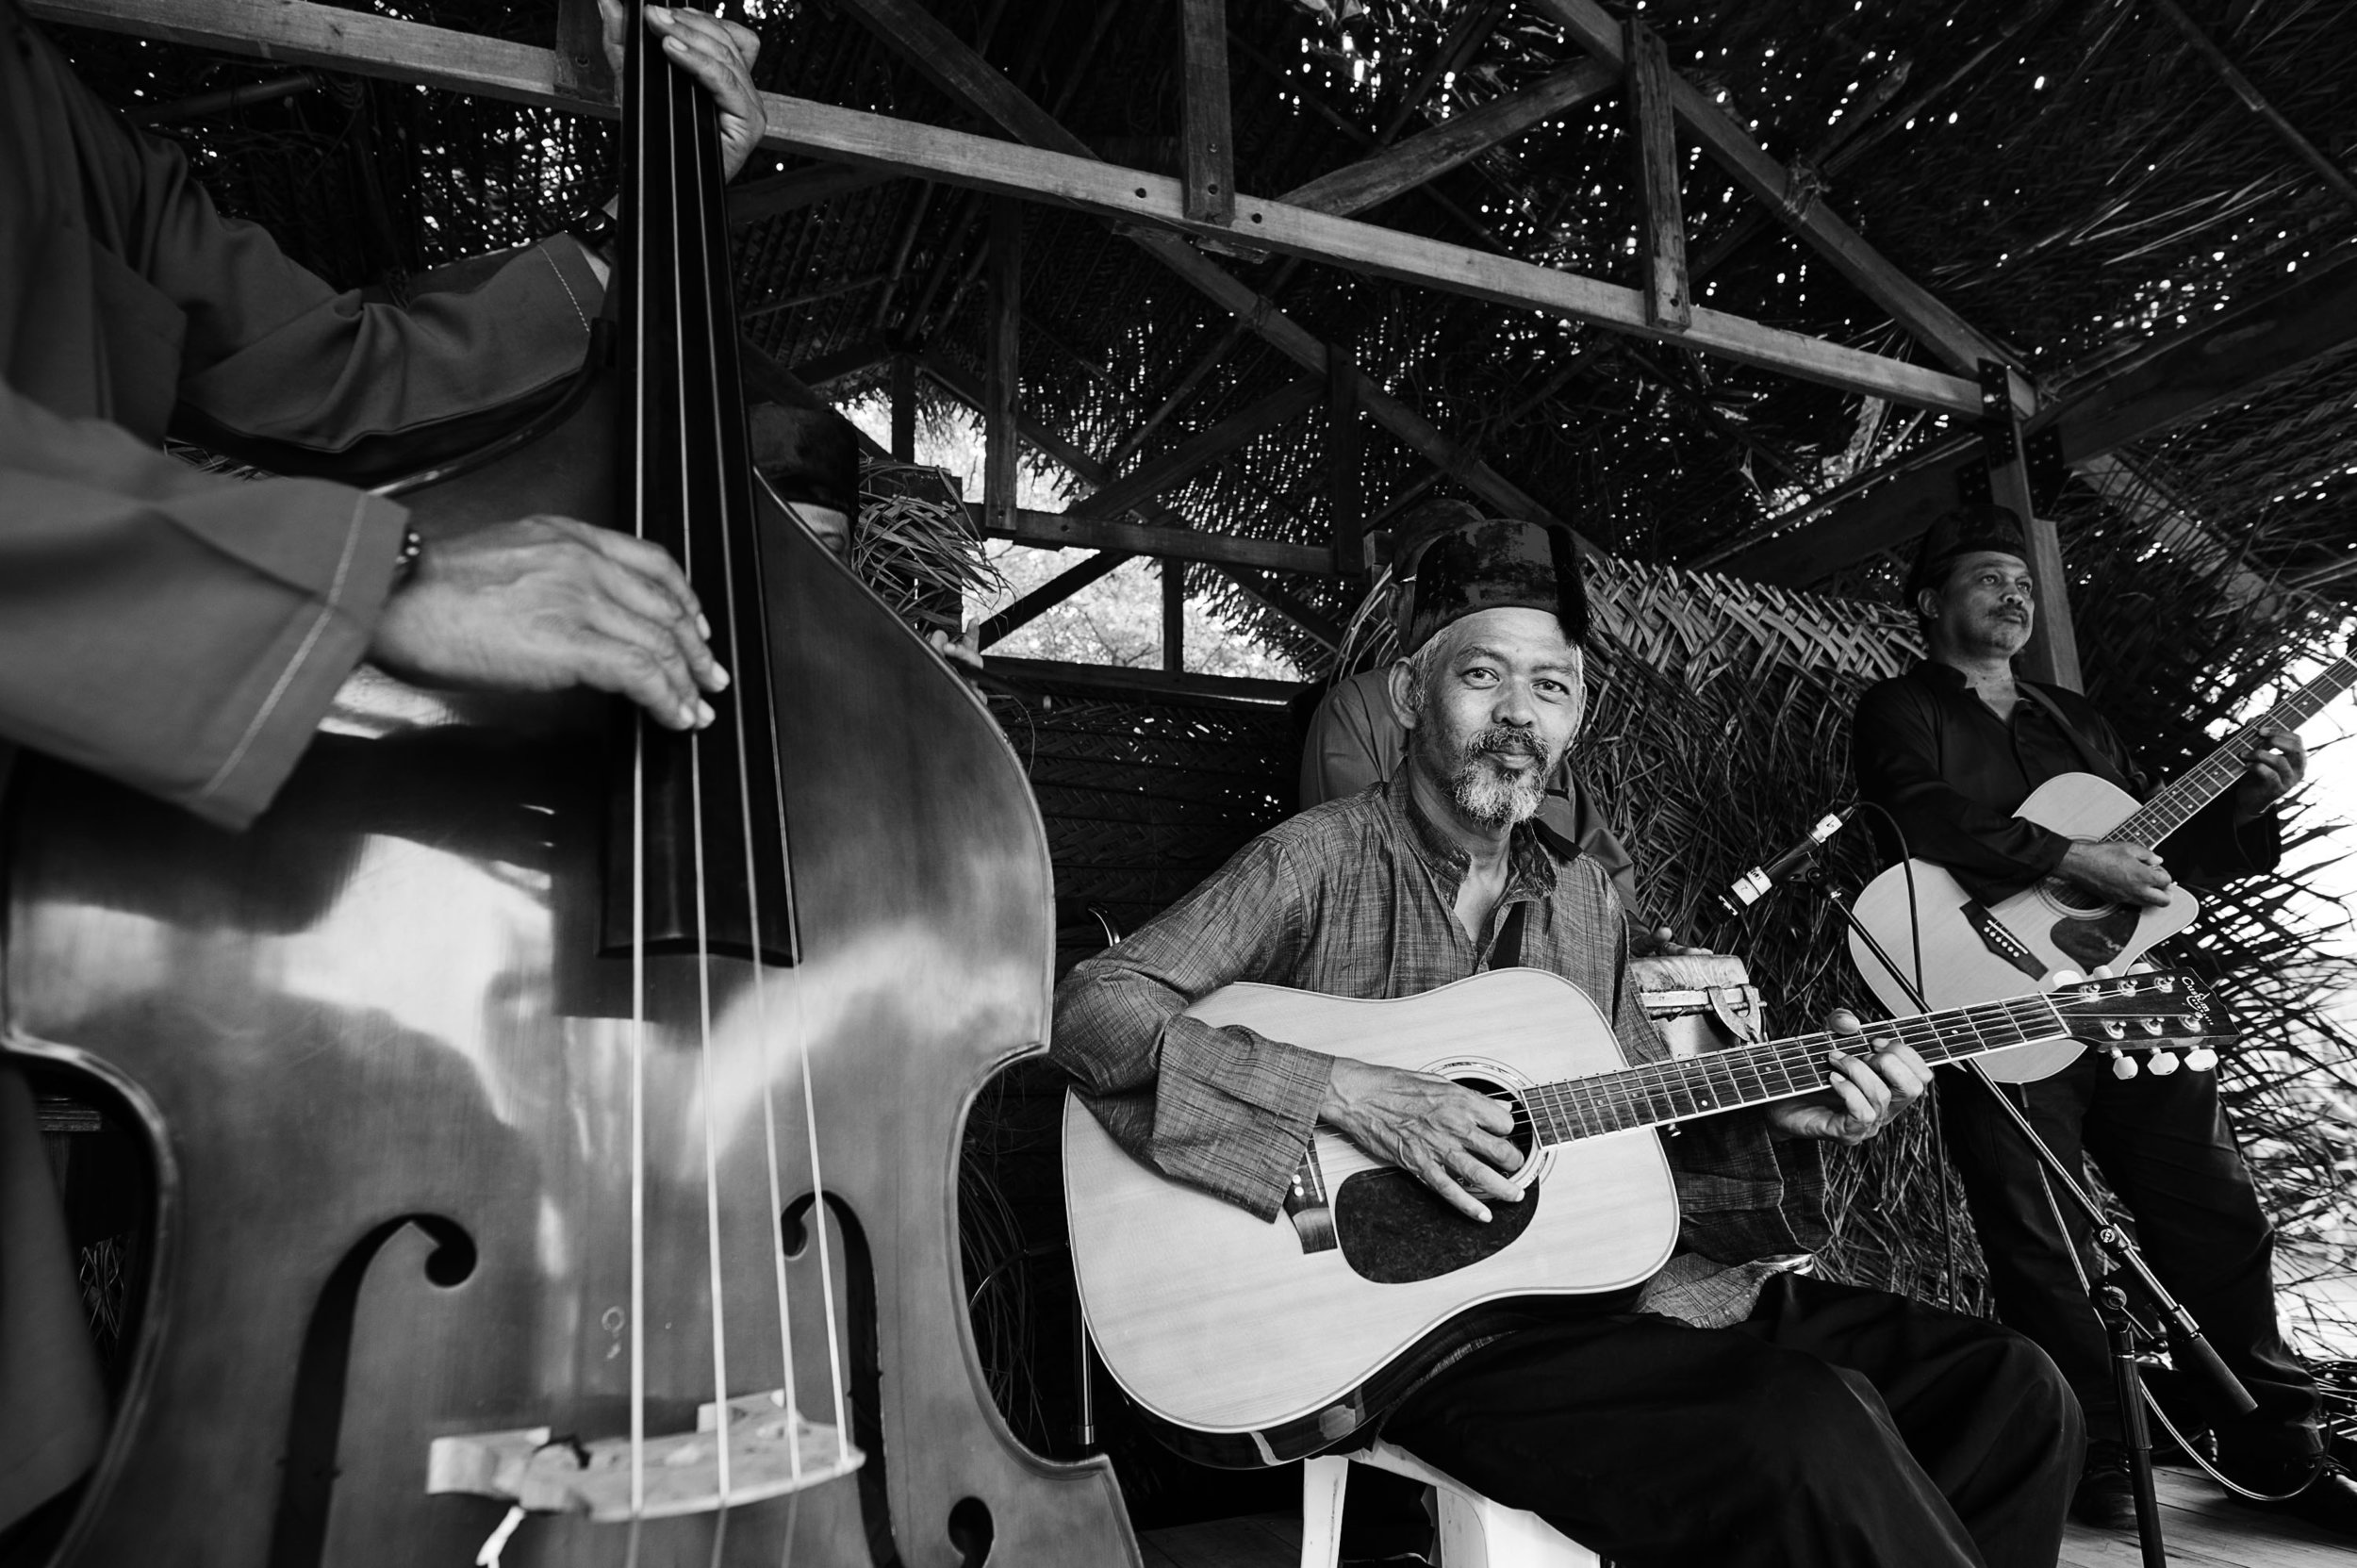 Photo credit: Cheryl Hoffmann